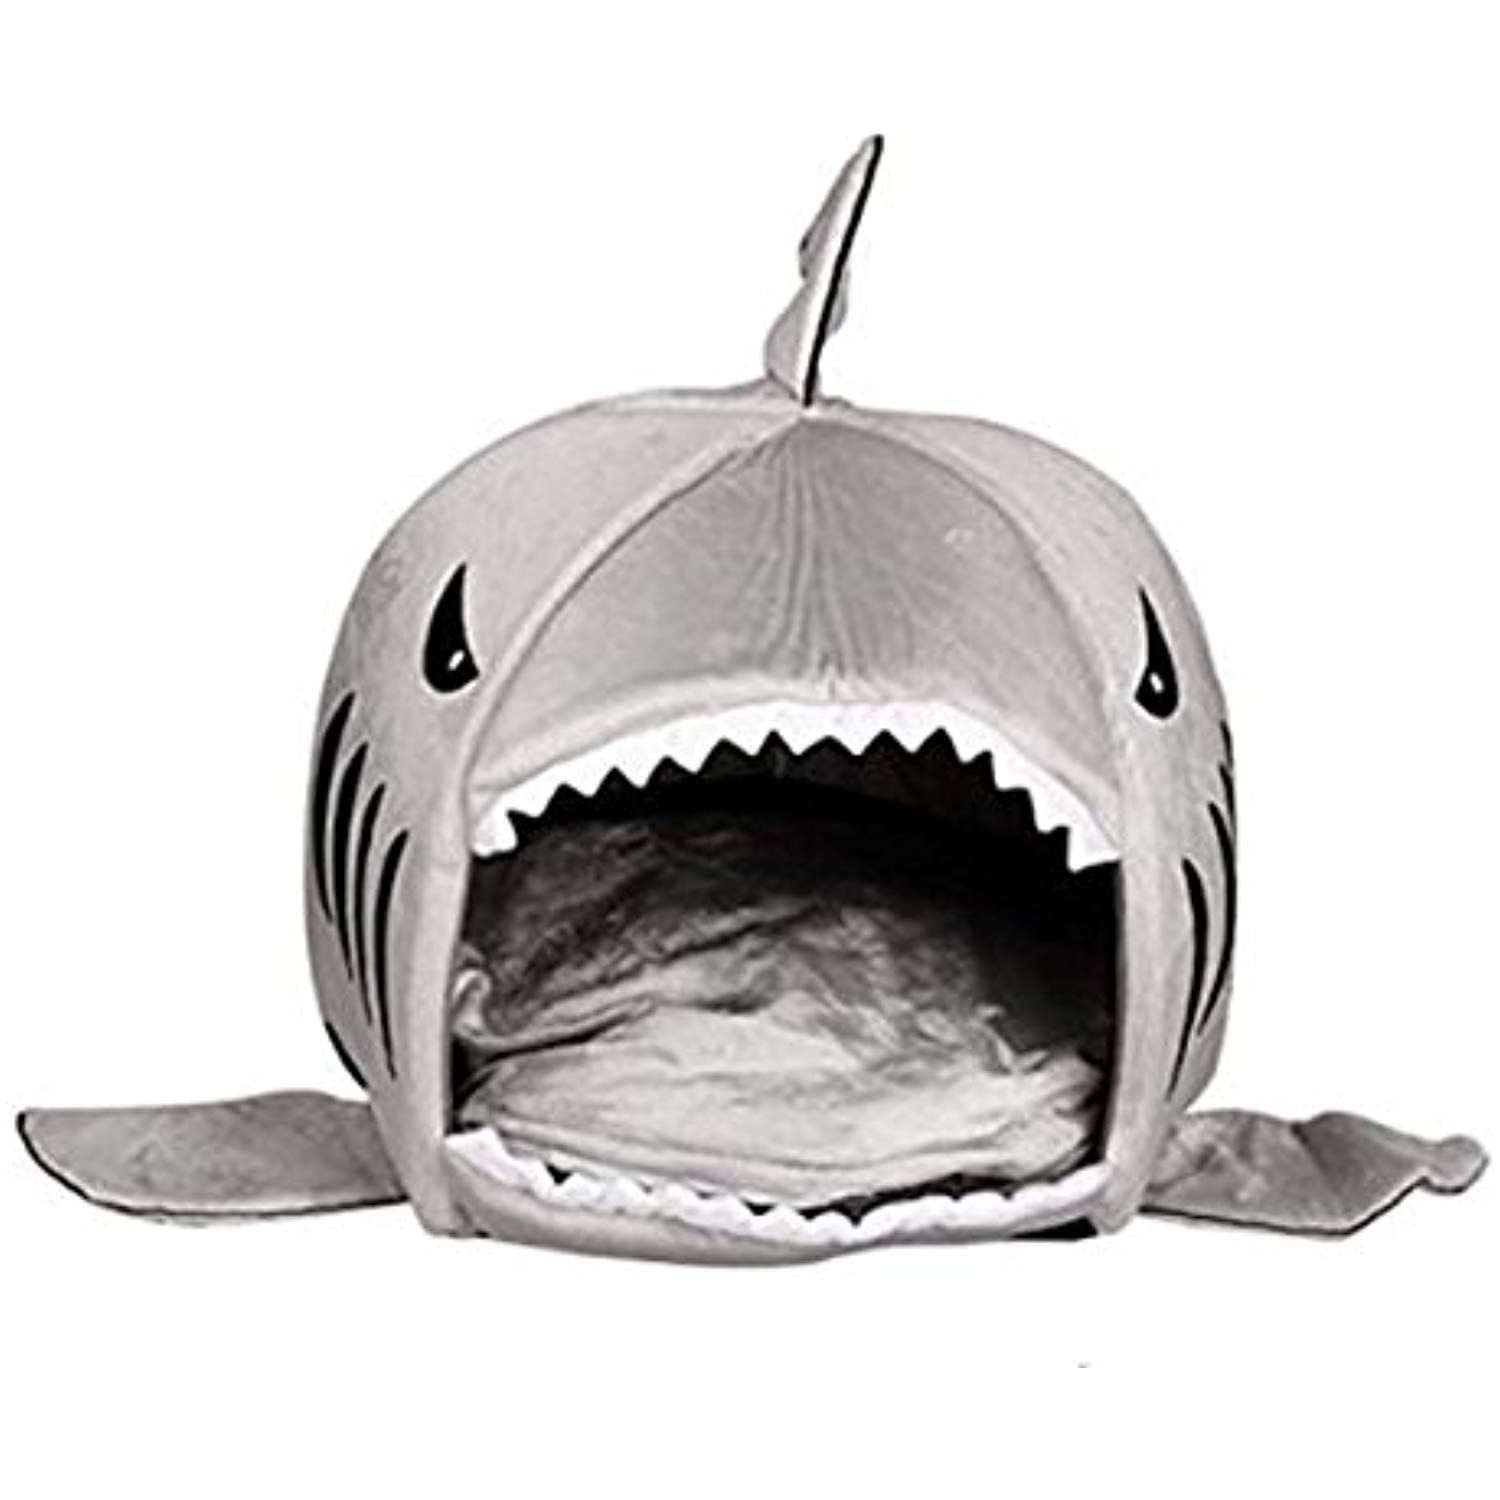 Nalanda Grey Shark Bed For Large Cat Dog Cave Bed Removable Cushion Waterproof Bottom Most Lovely Pet House Gift For Pet Check Out The Image With Images Washable Dog Bed